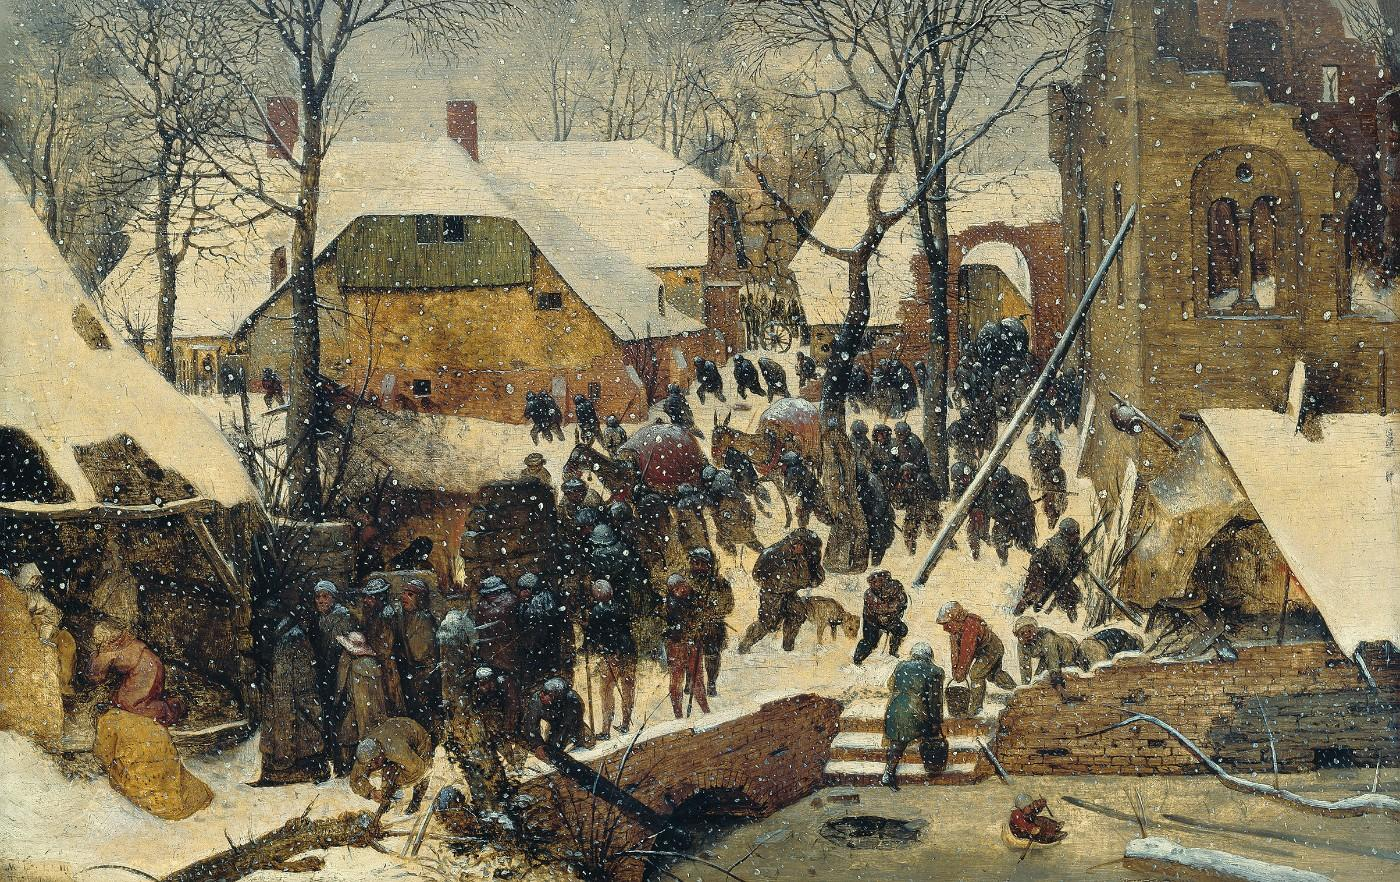 Pieter Bruegel the Elder, The Adoration of the Magi in the Snow, 1563